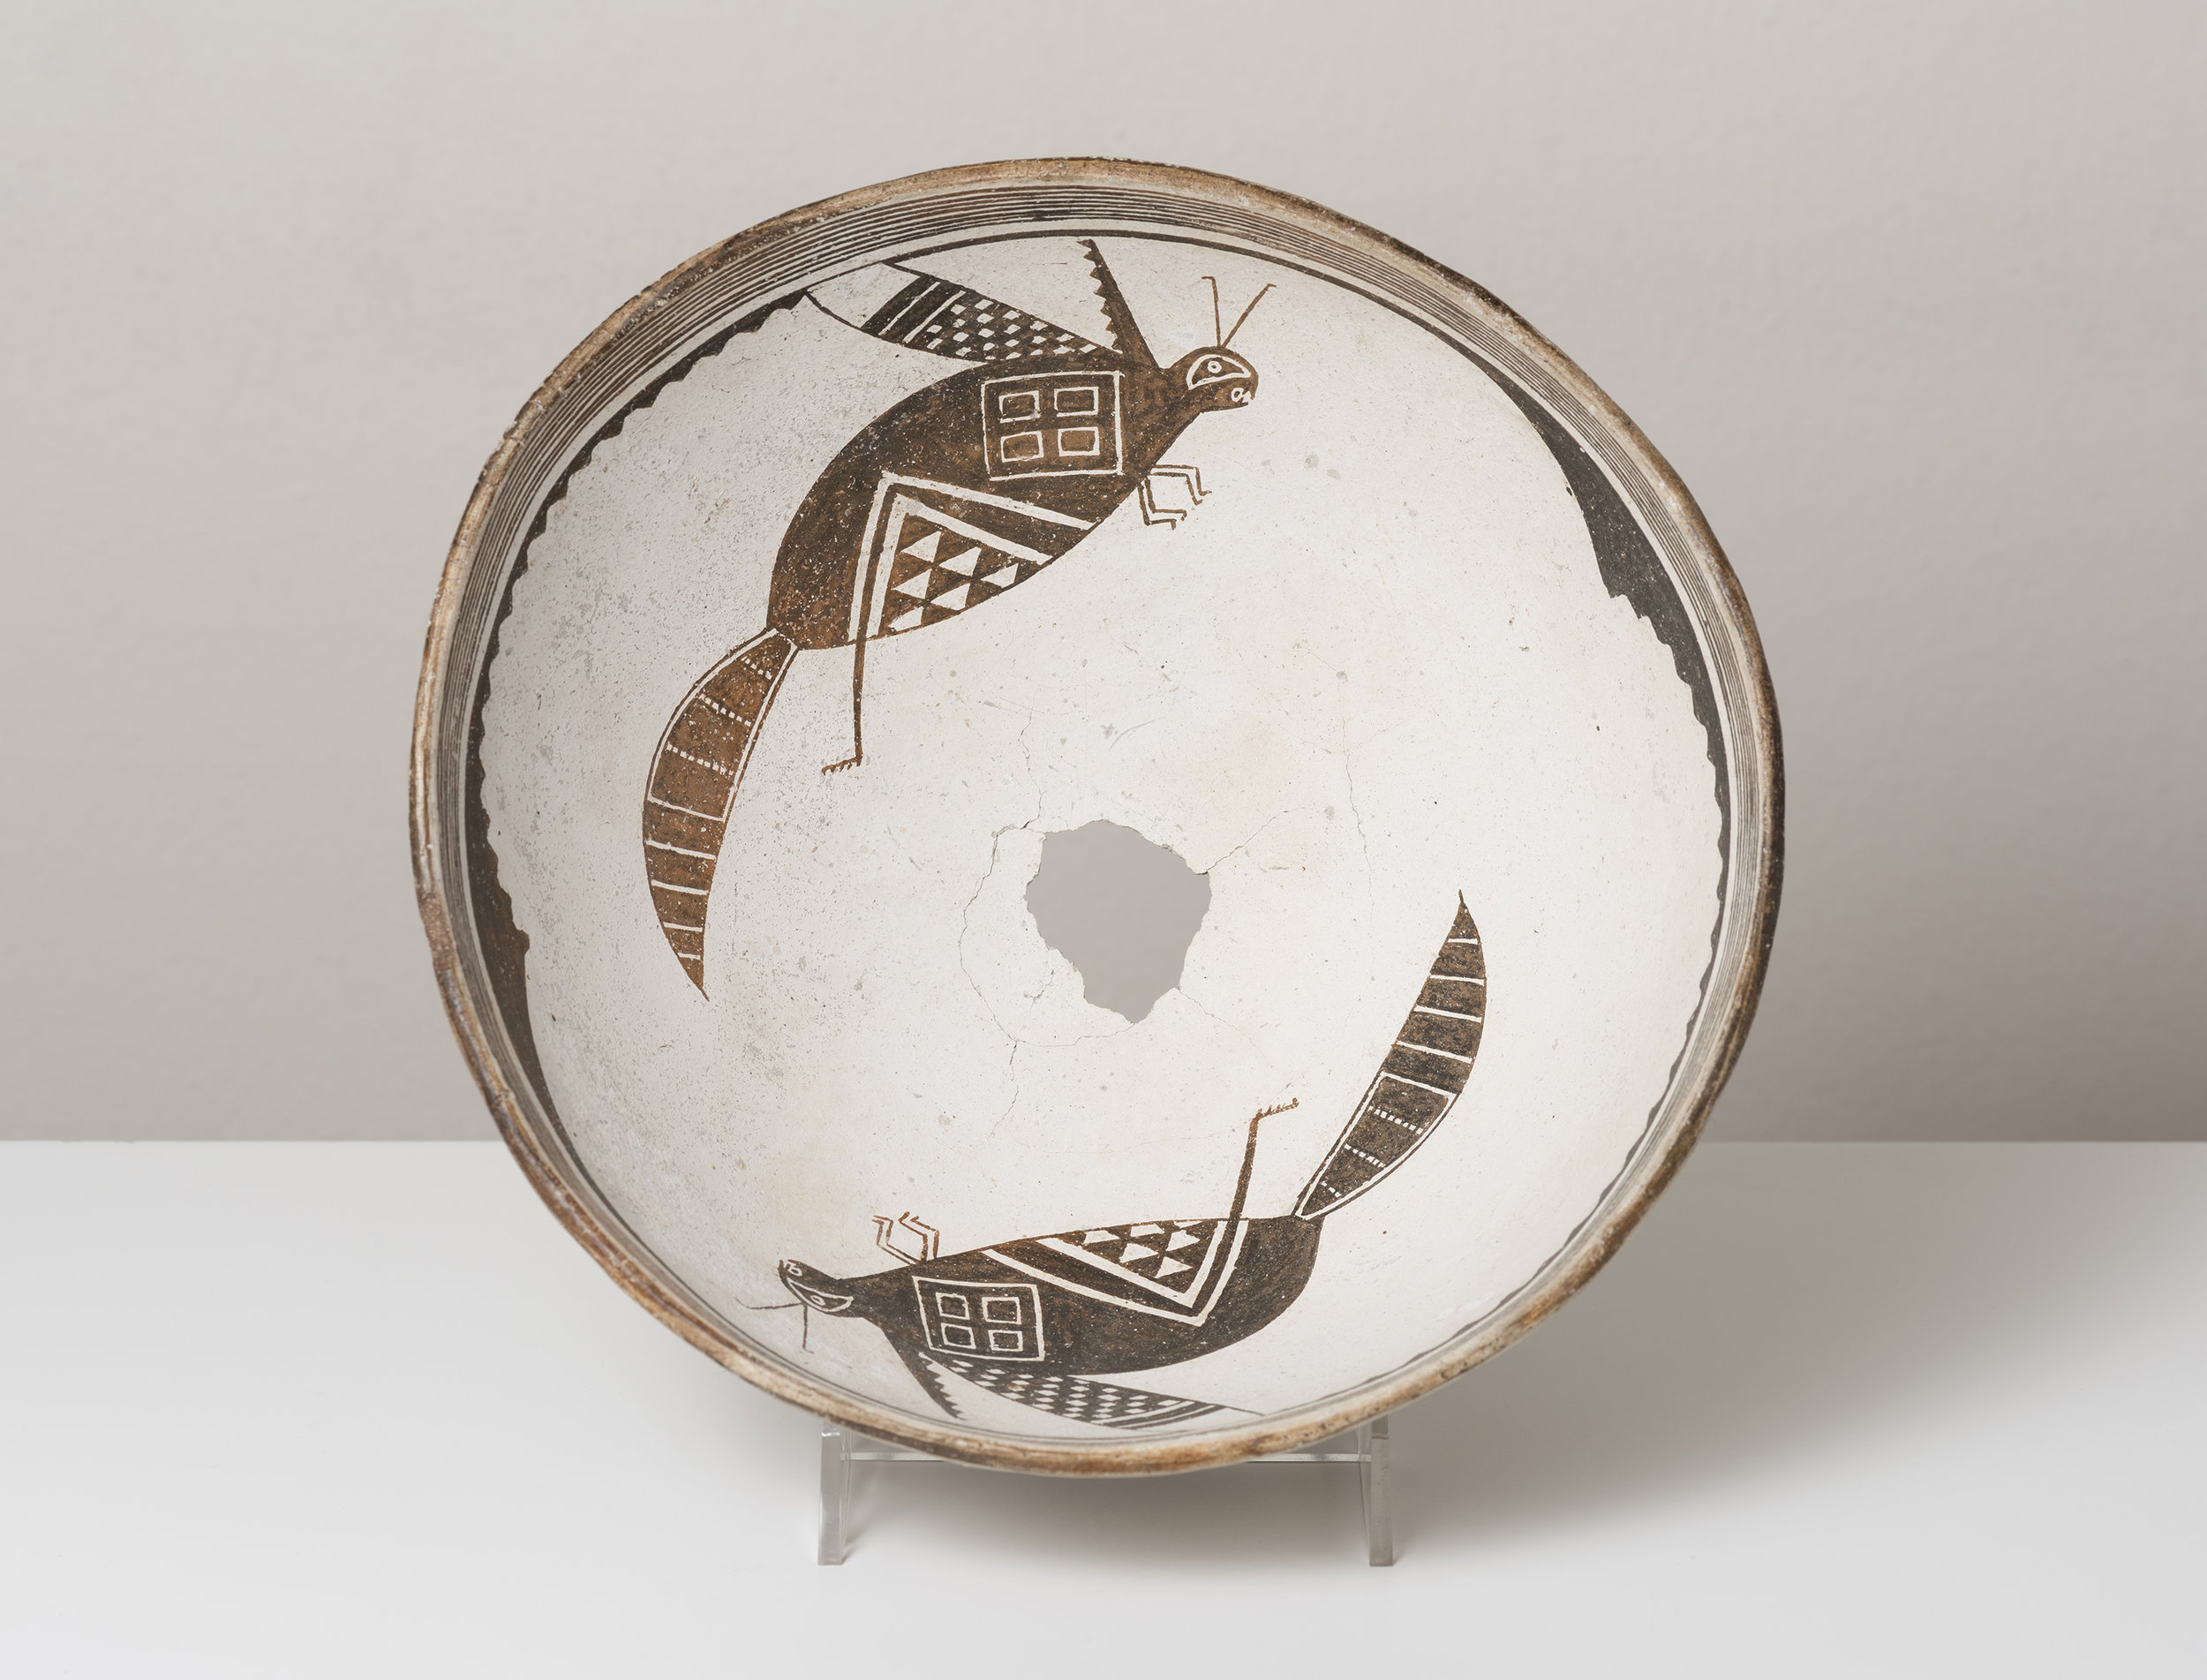 Classic Mimbres Black-on-white  Insects in rotational symmetry    c. 900 - 1000 CE Painted ceramic 9.5 inches diameter, 5 inches depth